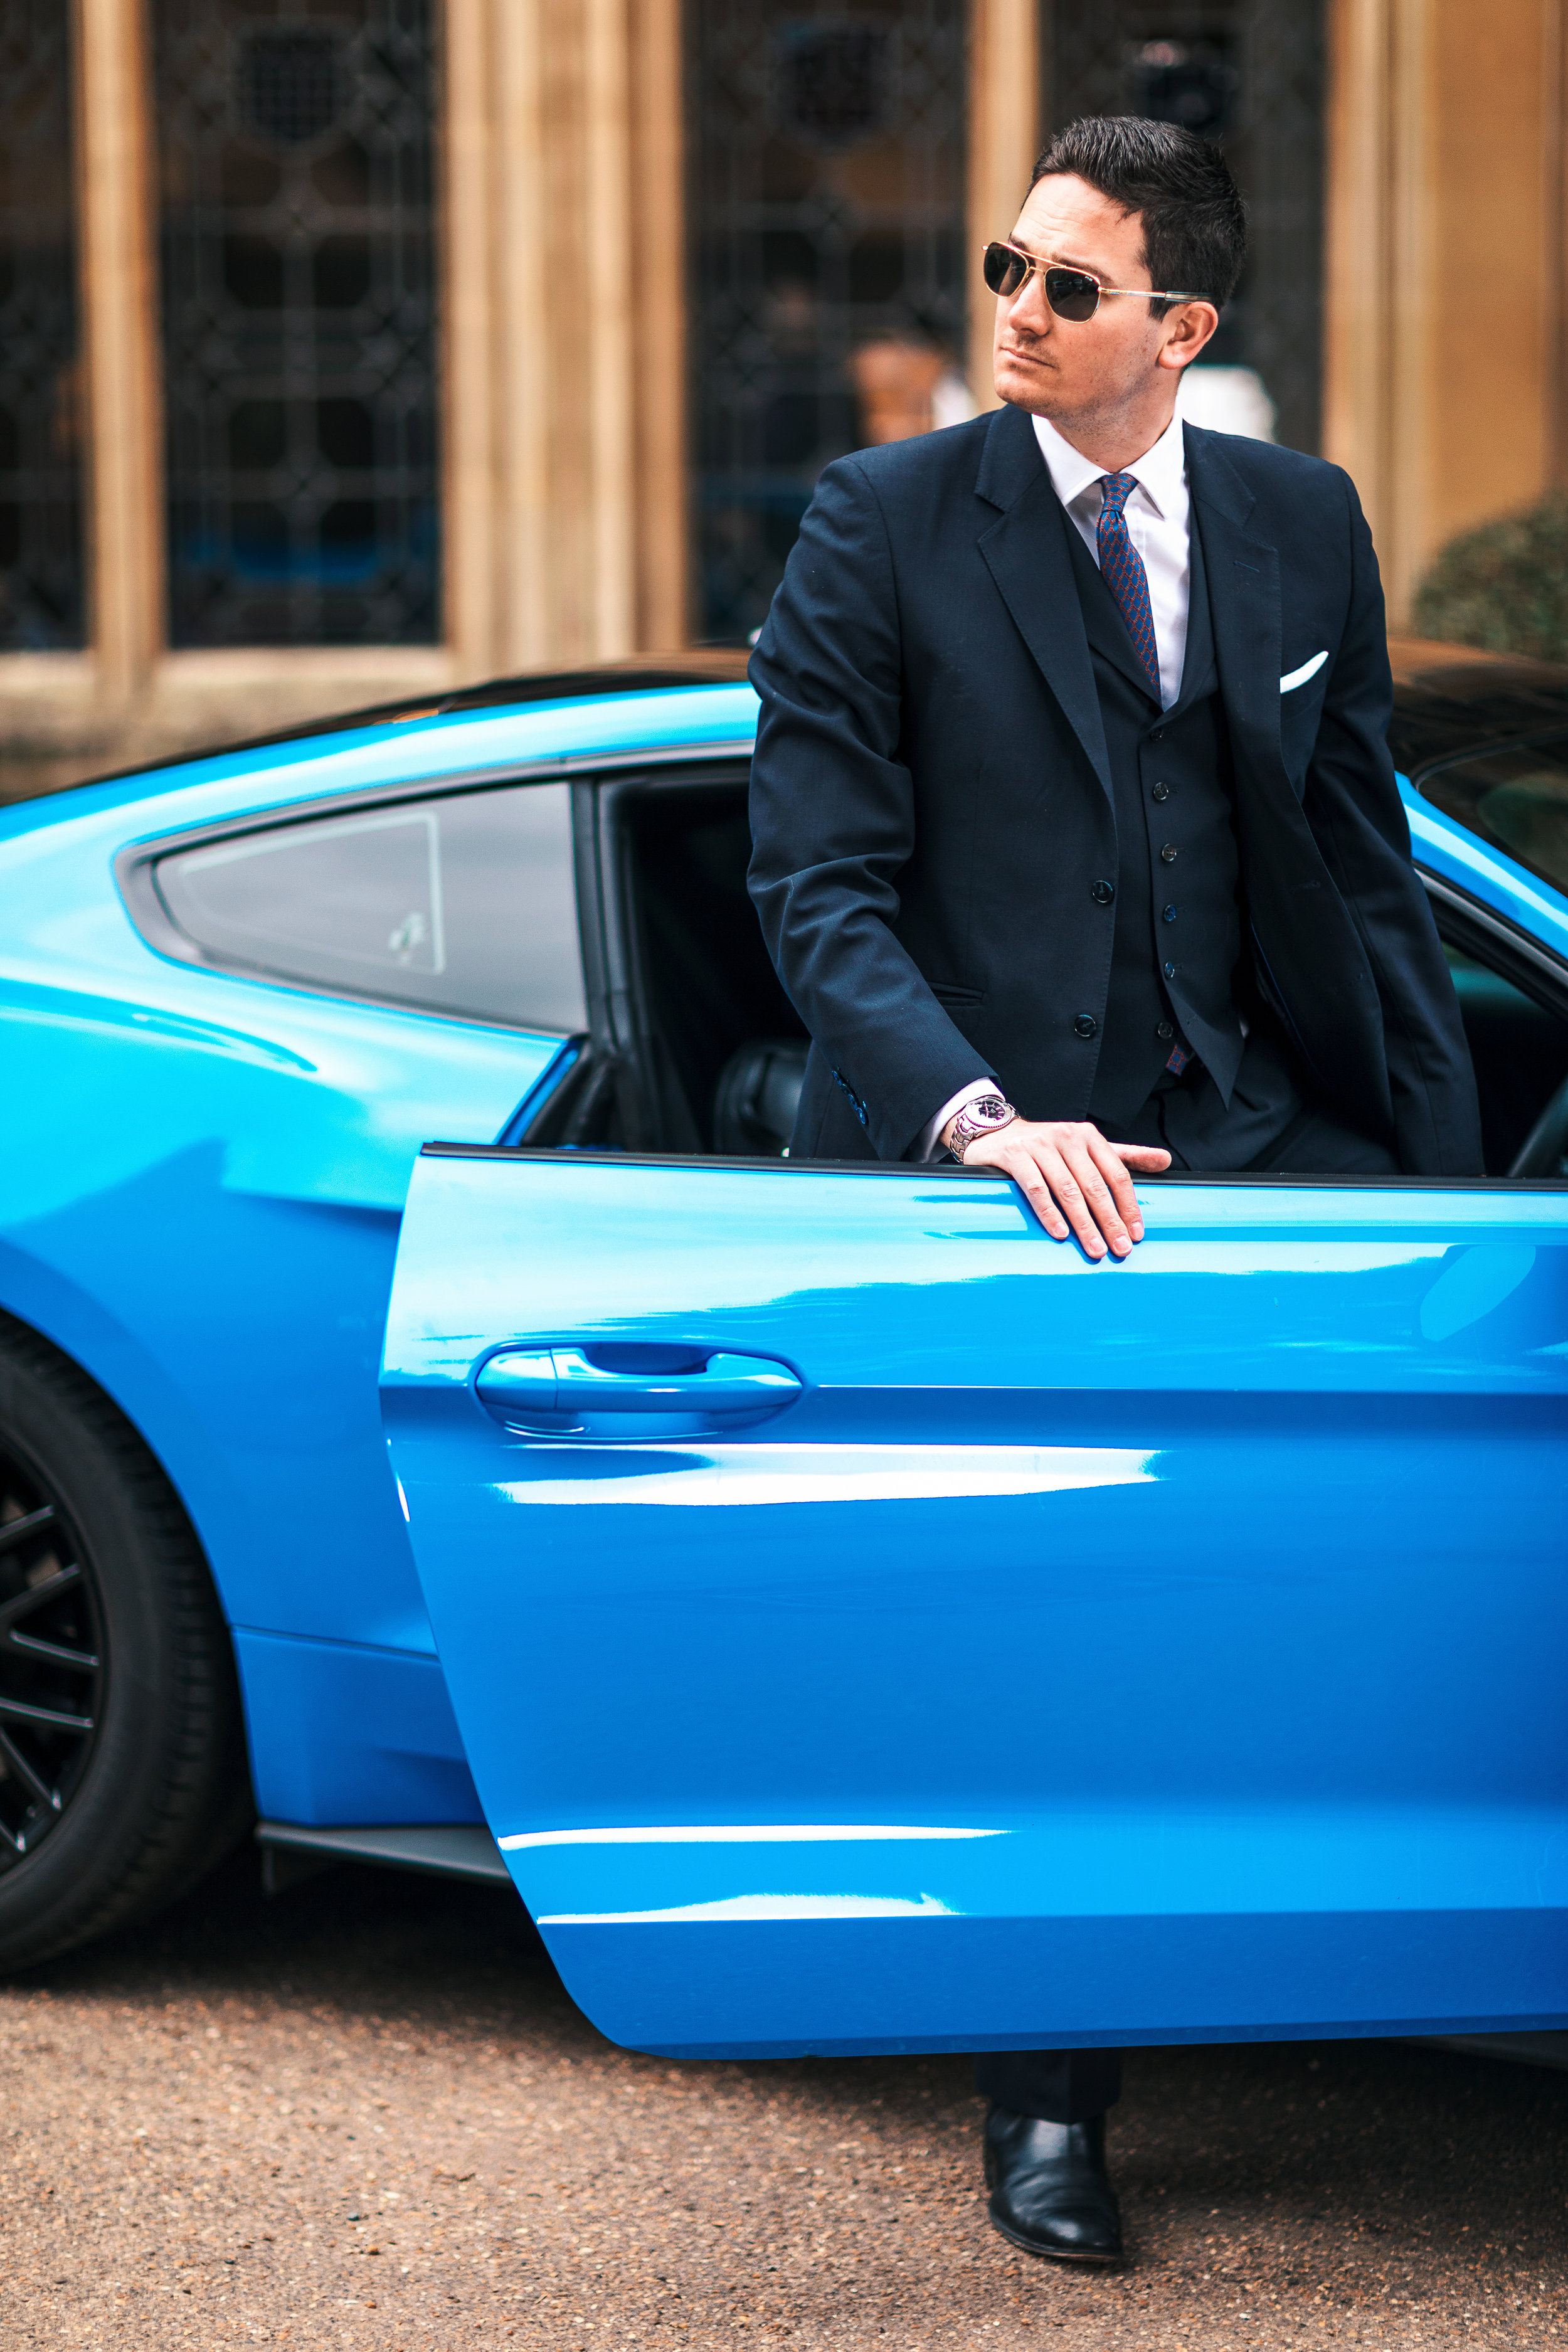 Making an Entrance - Modern Male Fashion Portrait with Ford Mustang